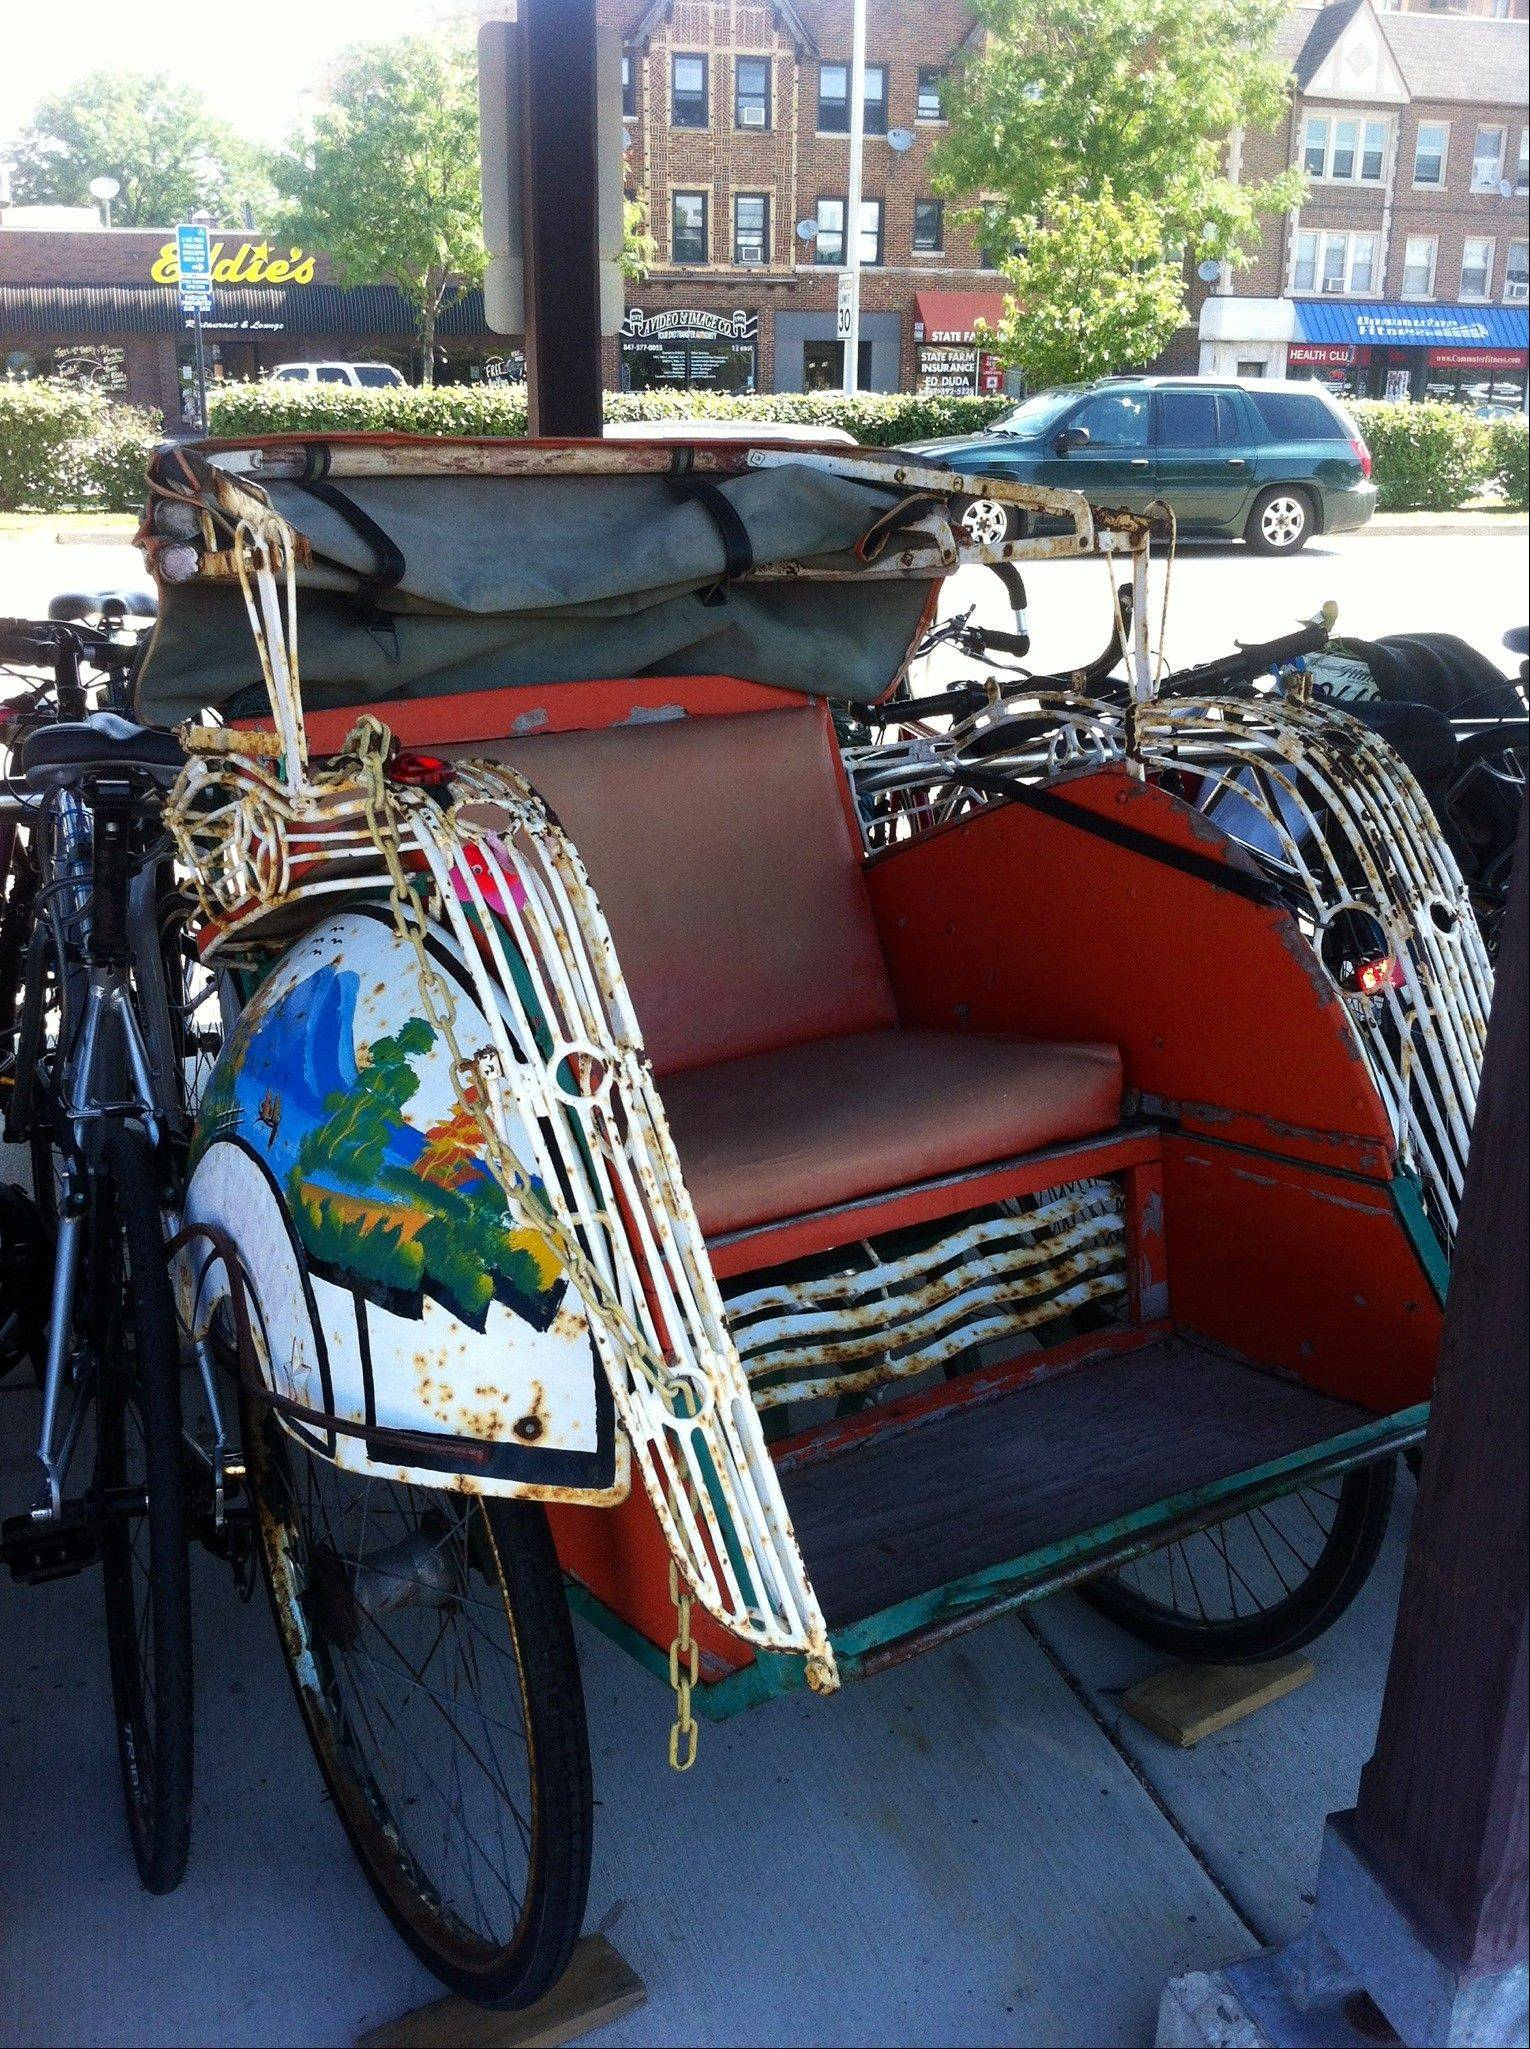 The Hi Guy�s rickshaw locked up at the downtown Arlington Heights train station.